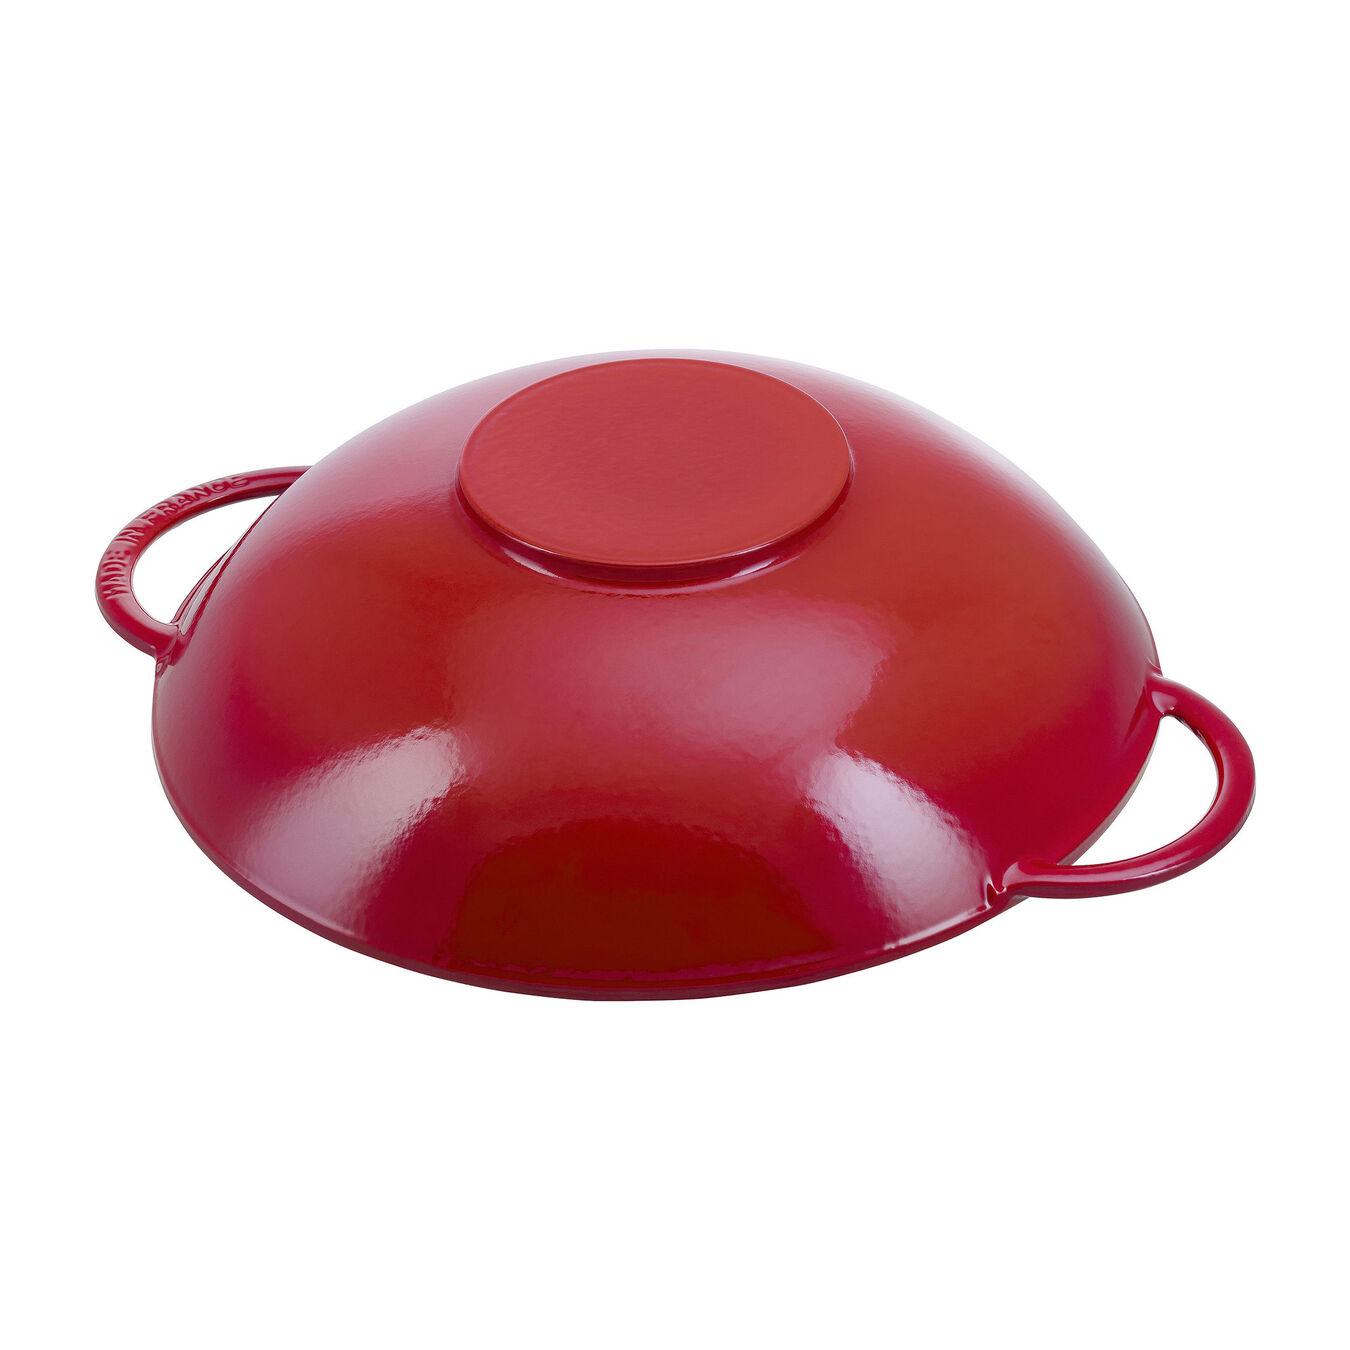 37 cm / 14.5 inch Wok with glass lid, cherry - Visual Imperfections,,large 4